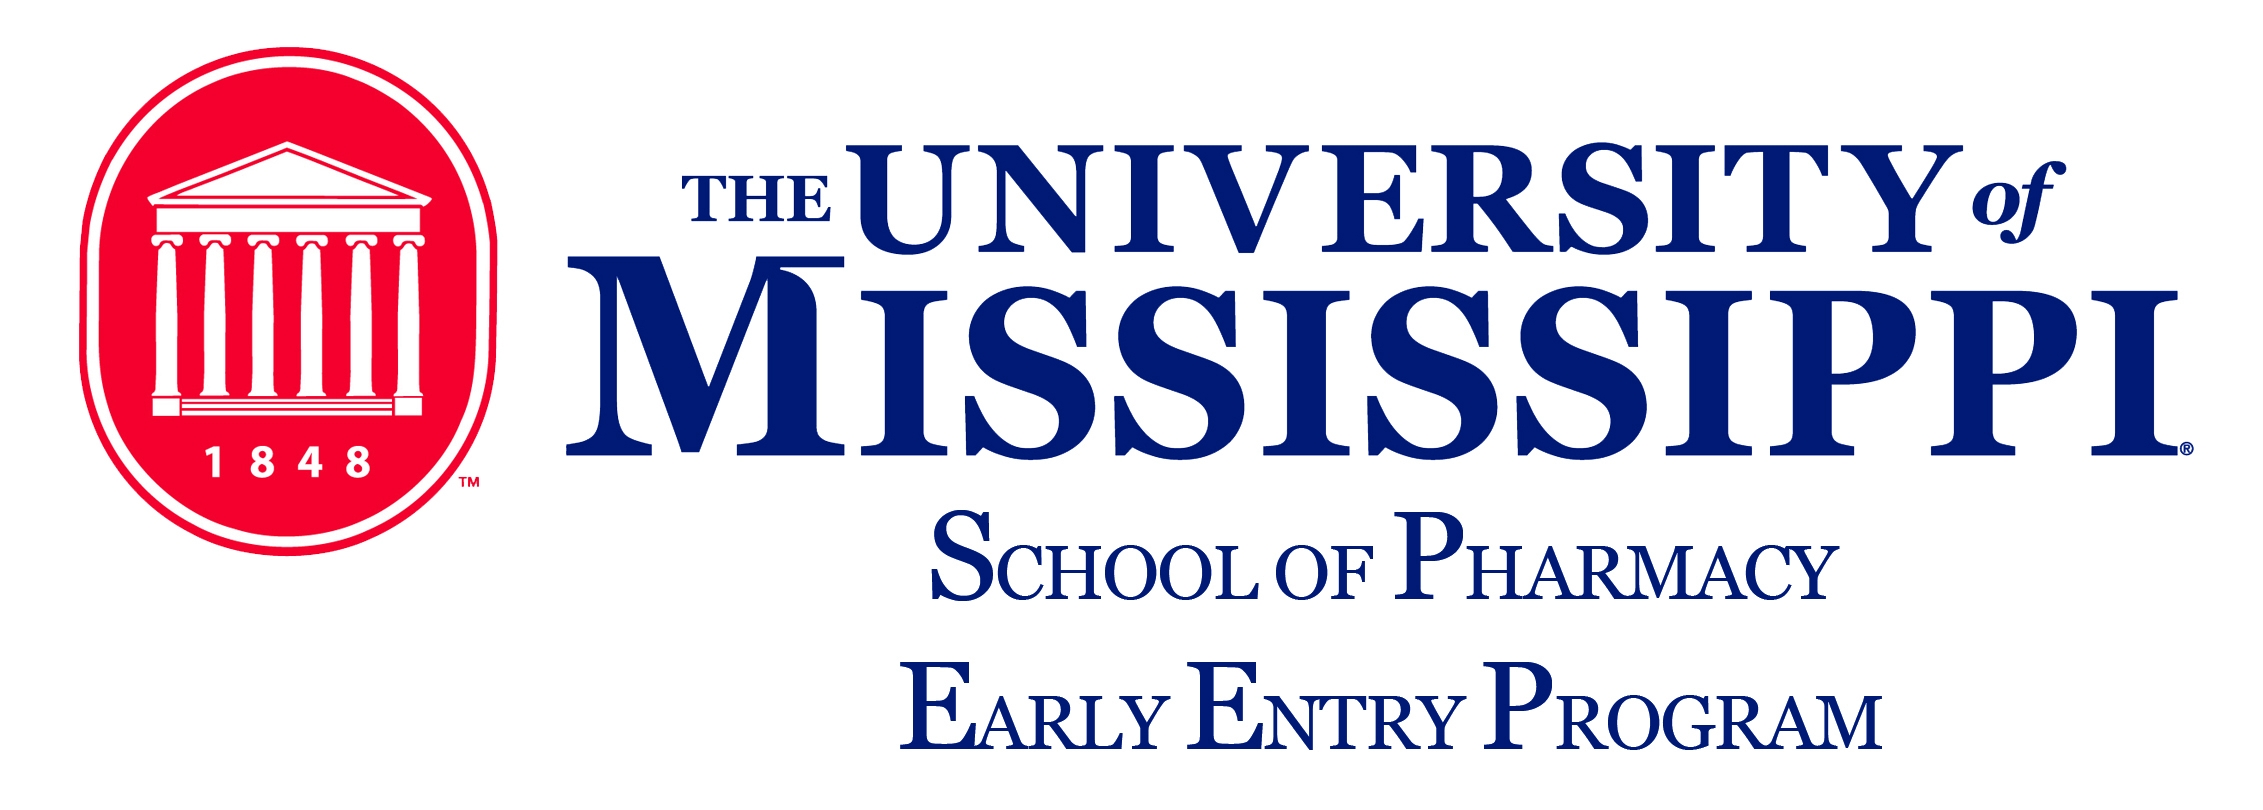 early entry program the university of mississippi